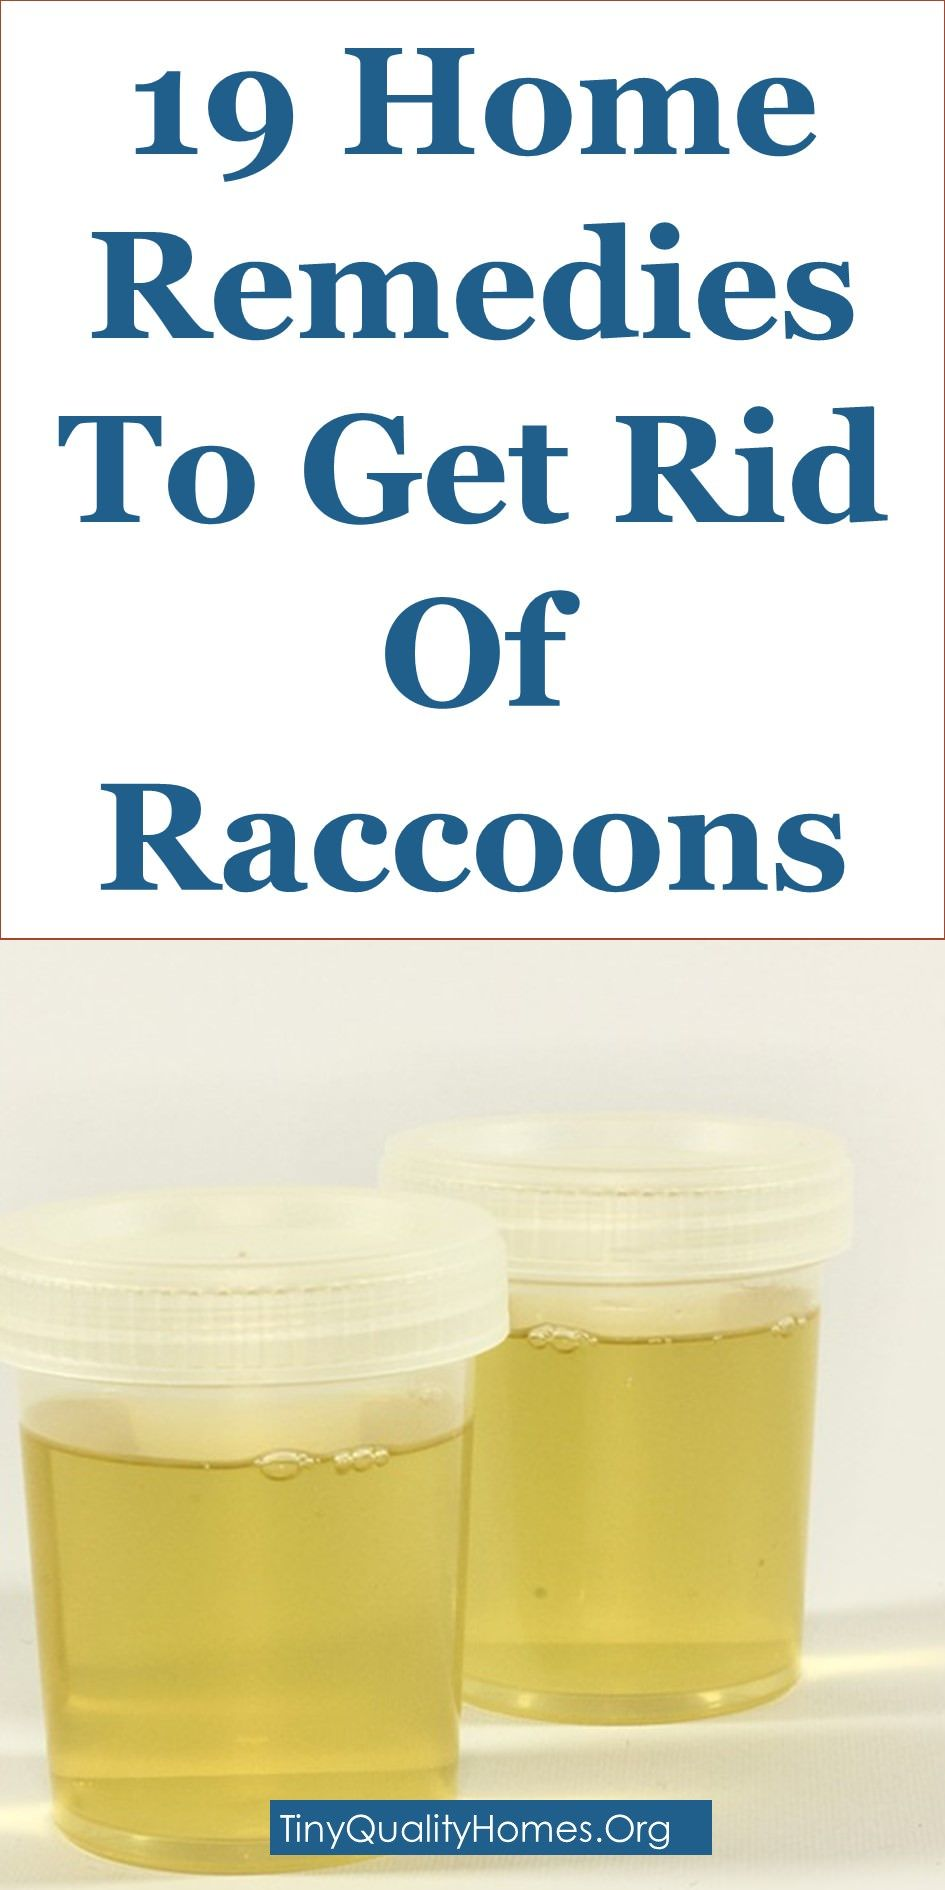 19 Quality Home Remedies To Get Rid Of Raccoons This Guide Shares